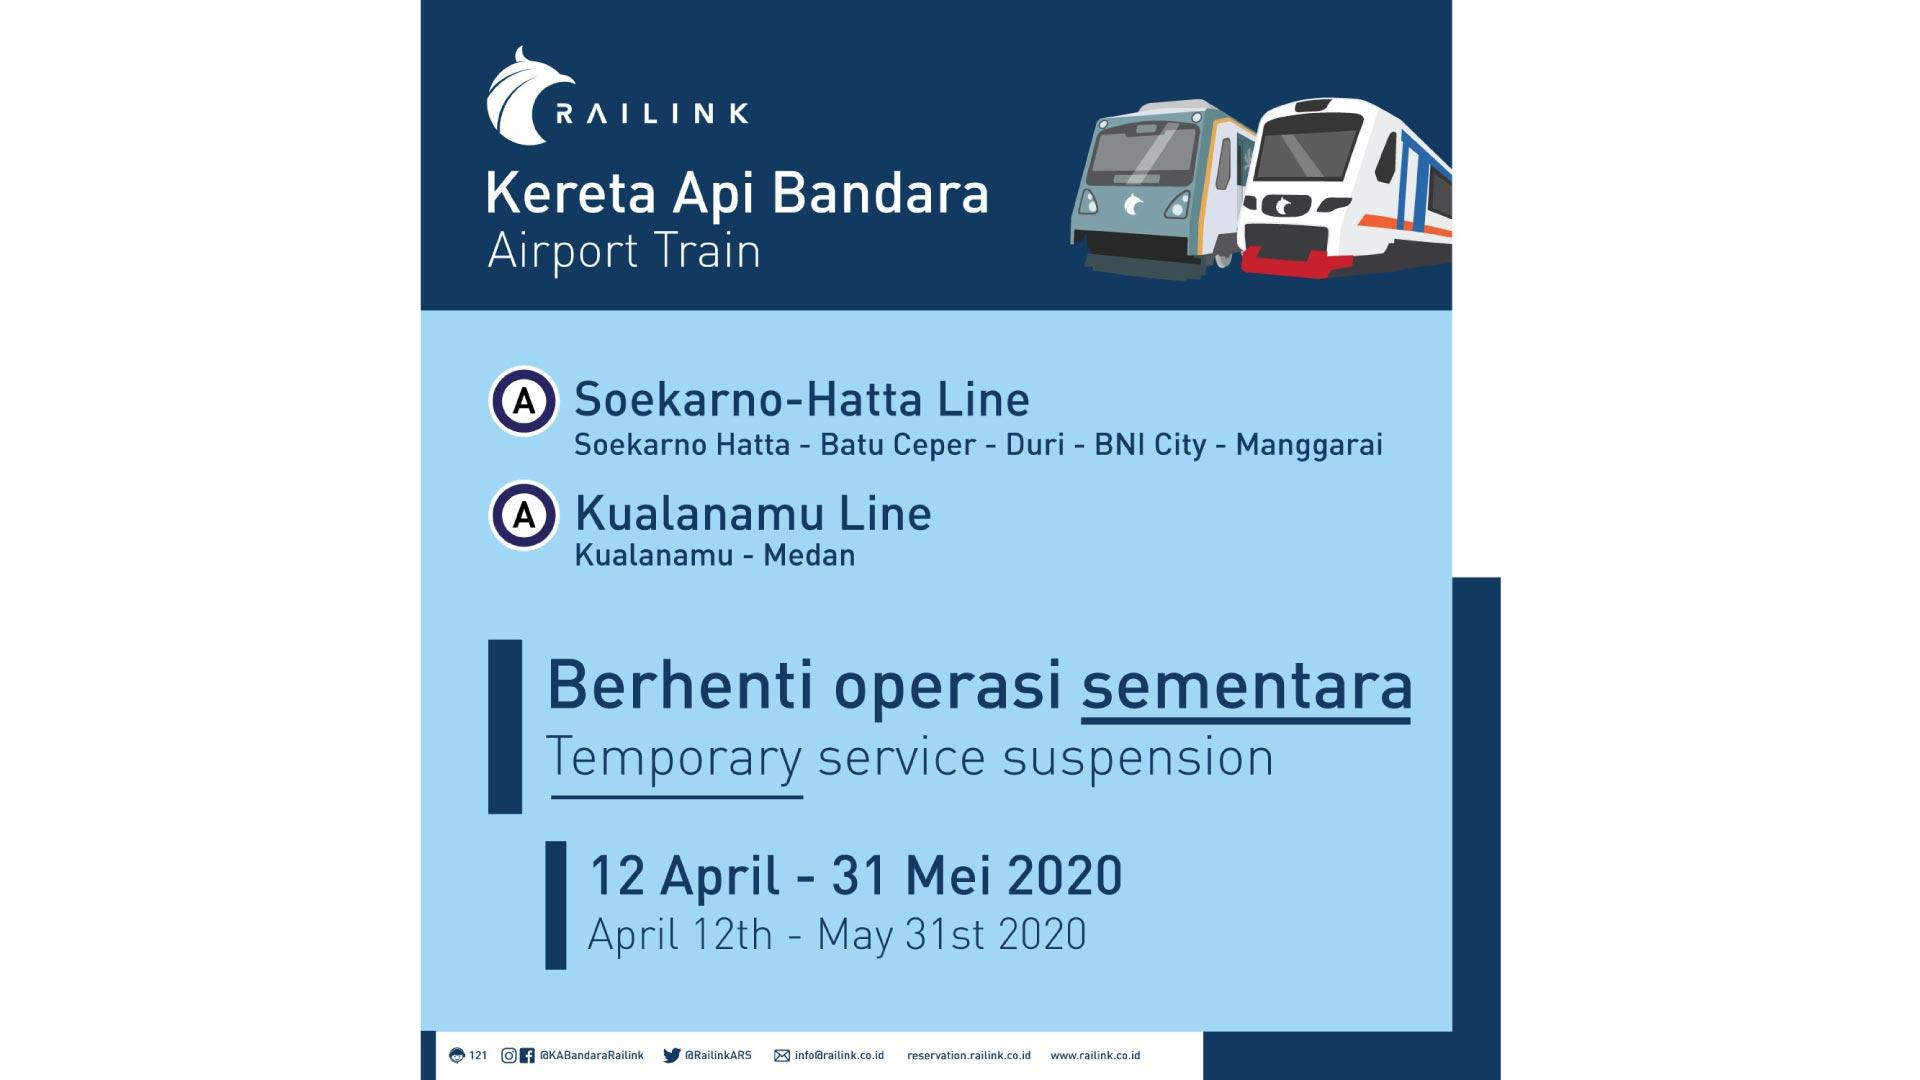 Anticipating the Spread of Covid-19, From 12 April to 31 May 2020 Railink Airport Train temporarily stops operating